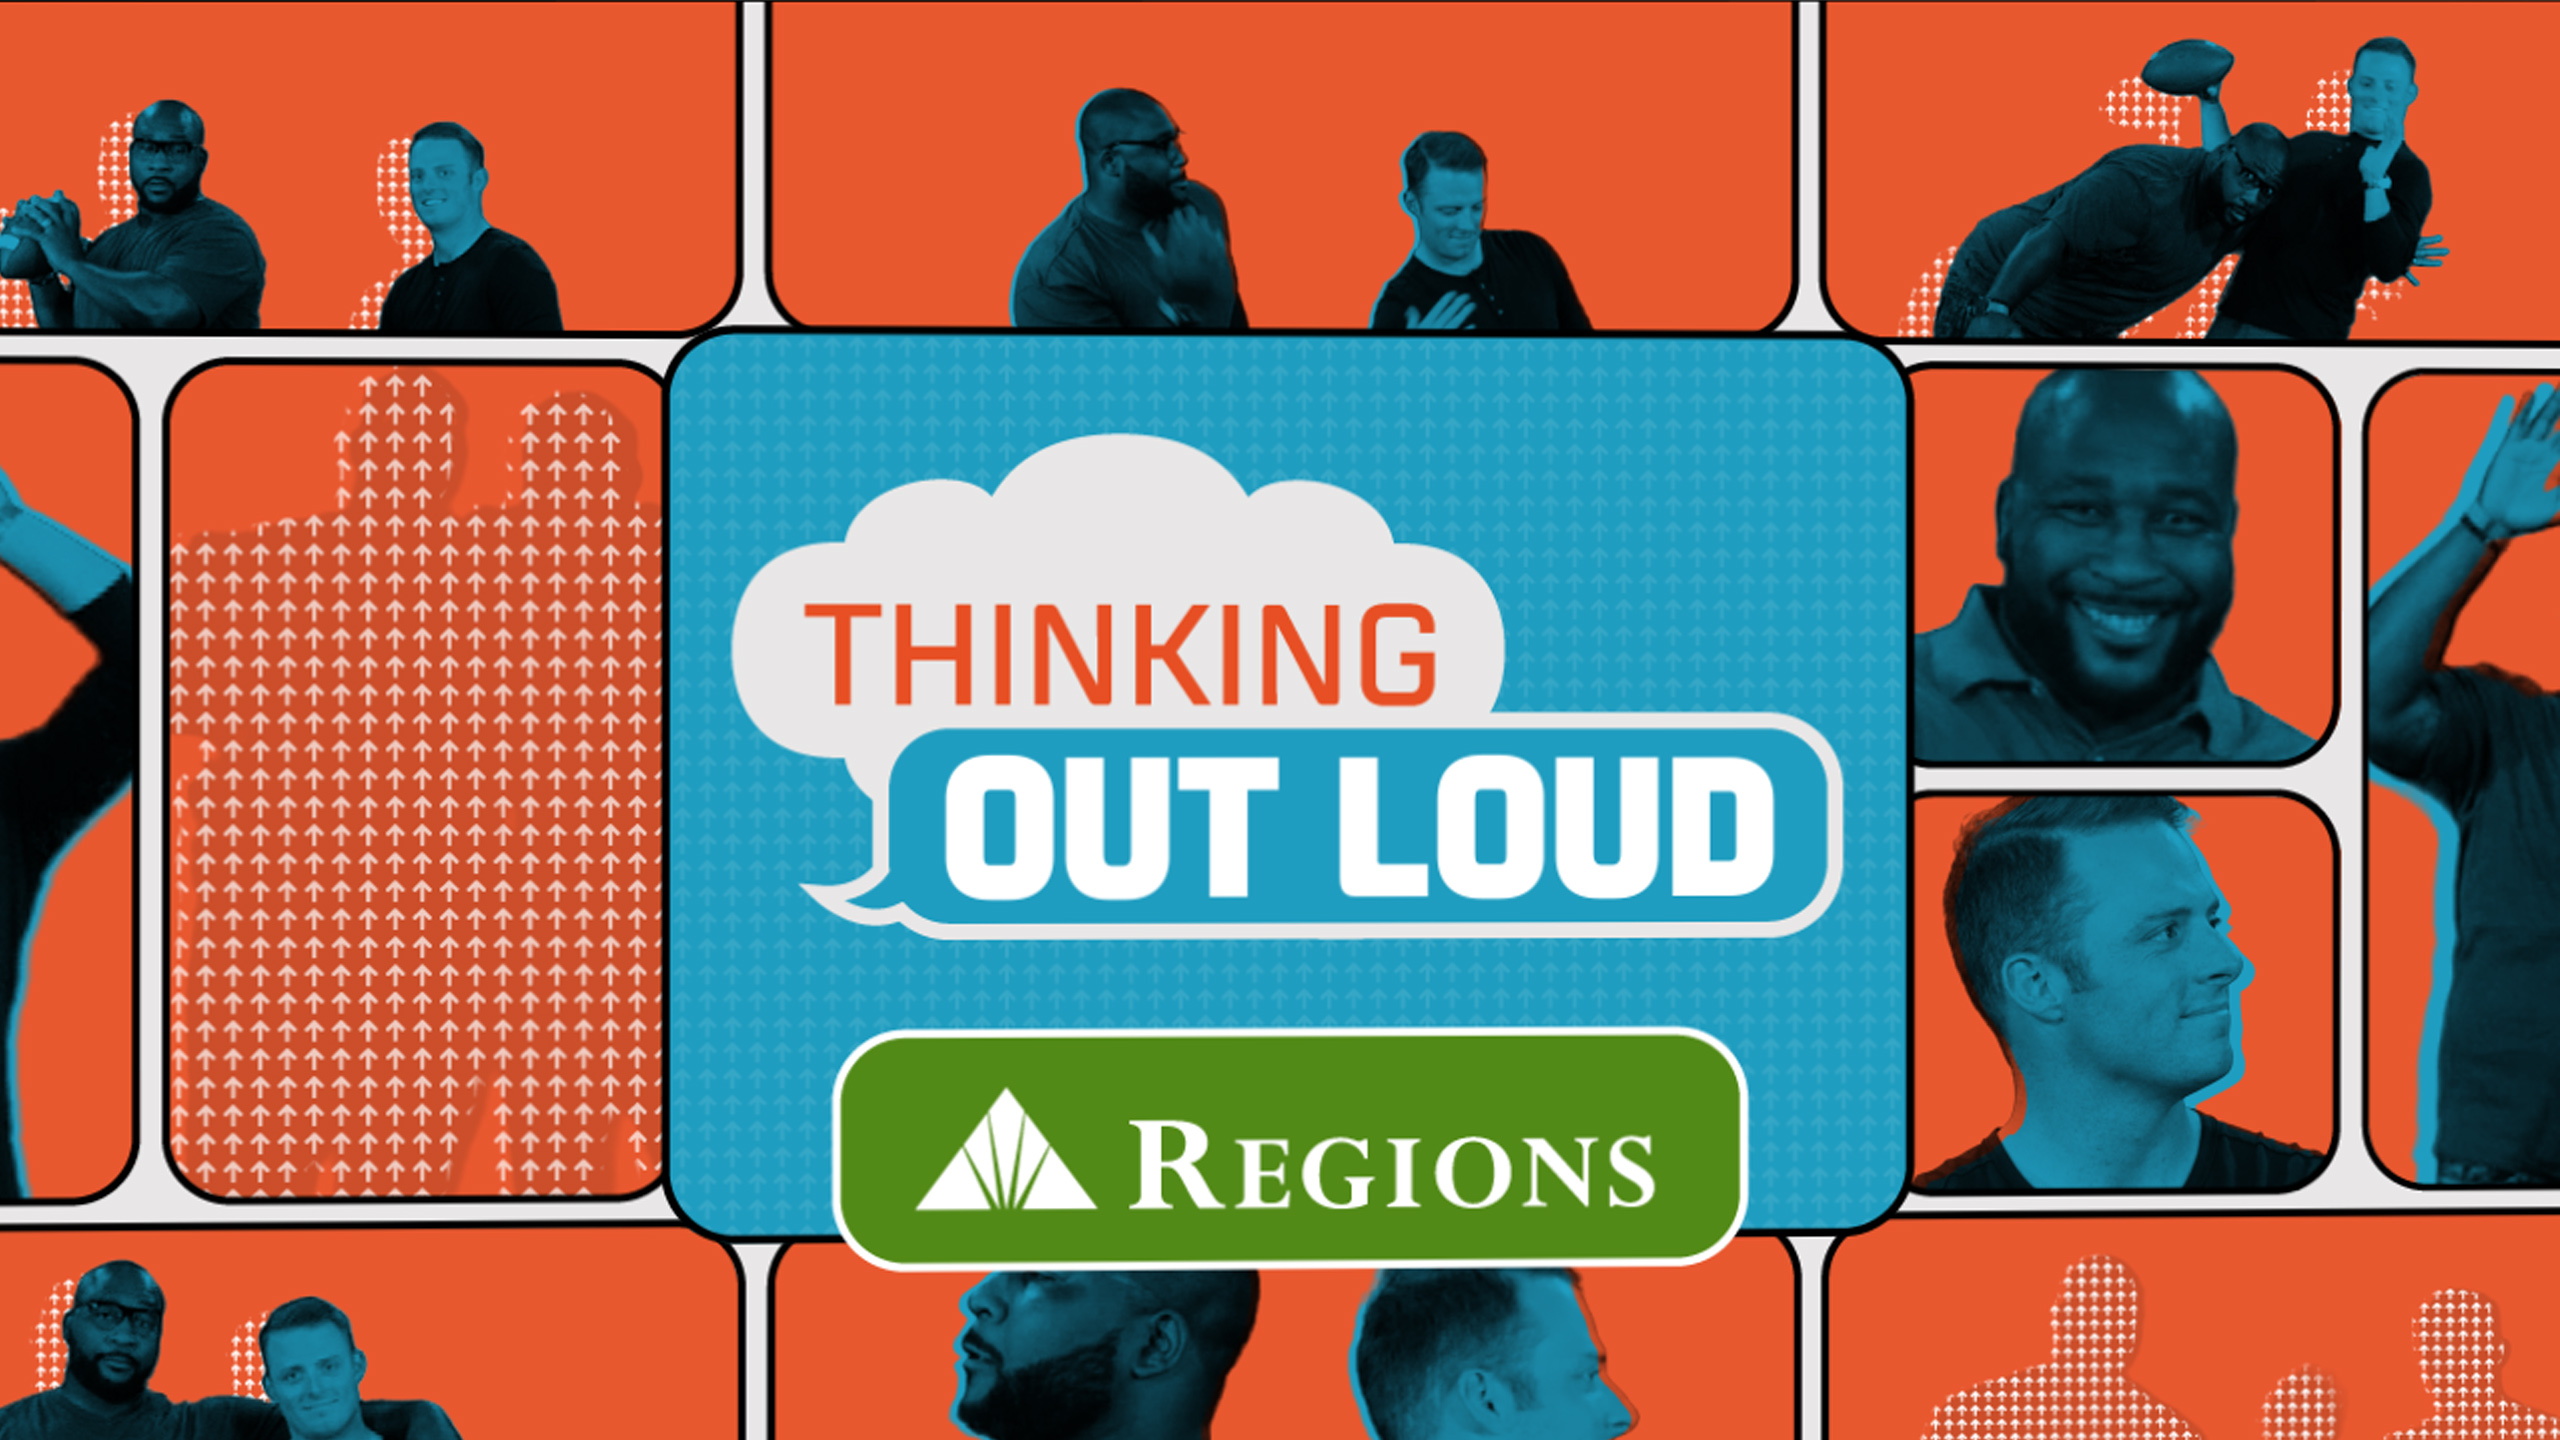 Mon, 9/24 - Thinking Out Loud Presented by Regions Bank